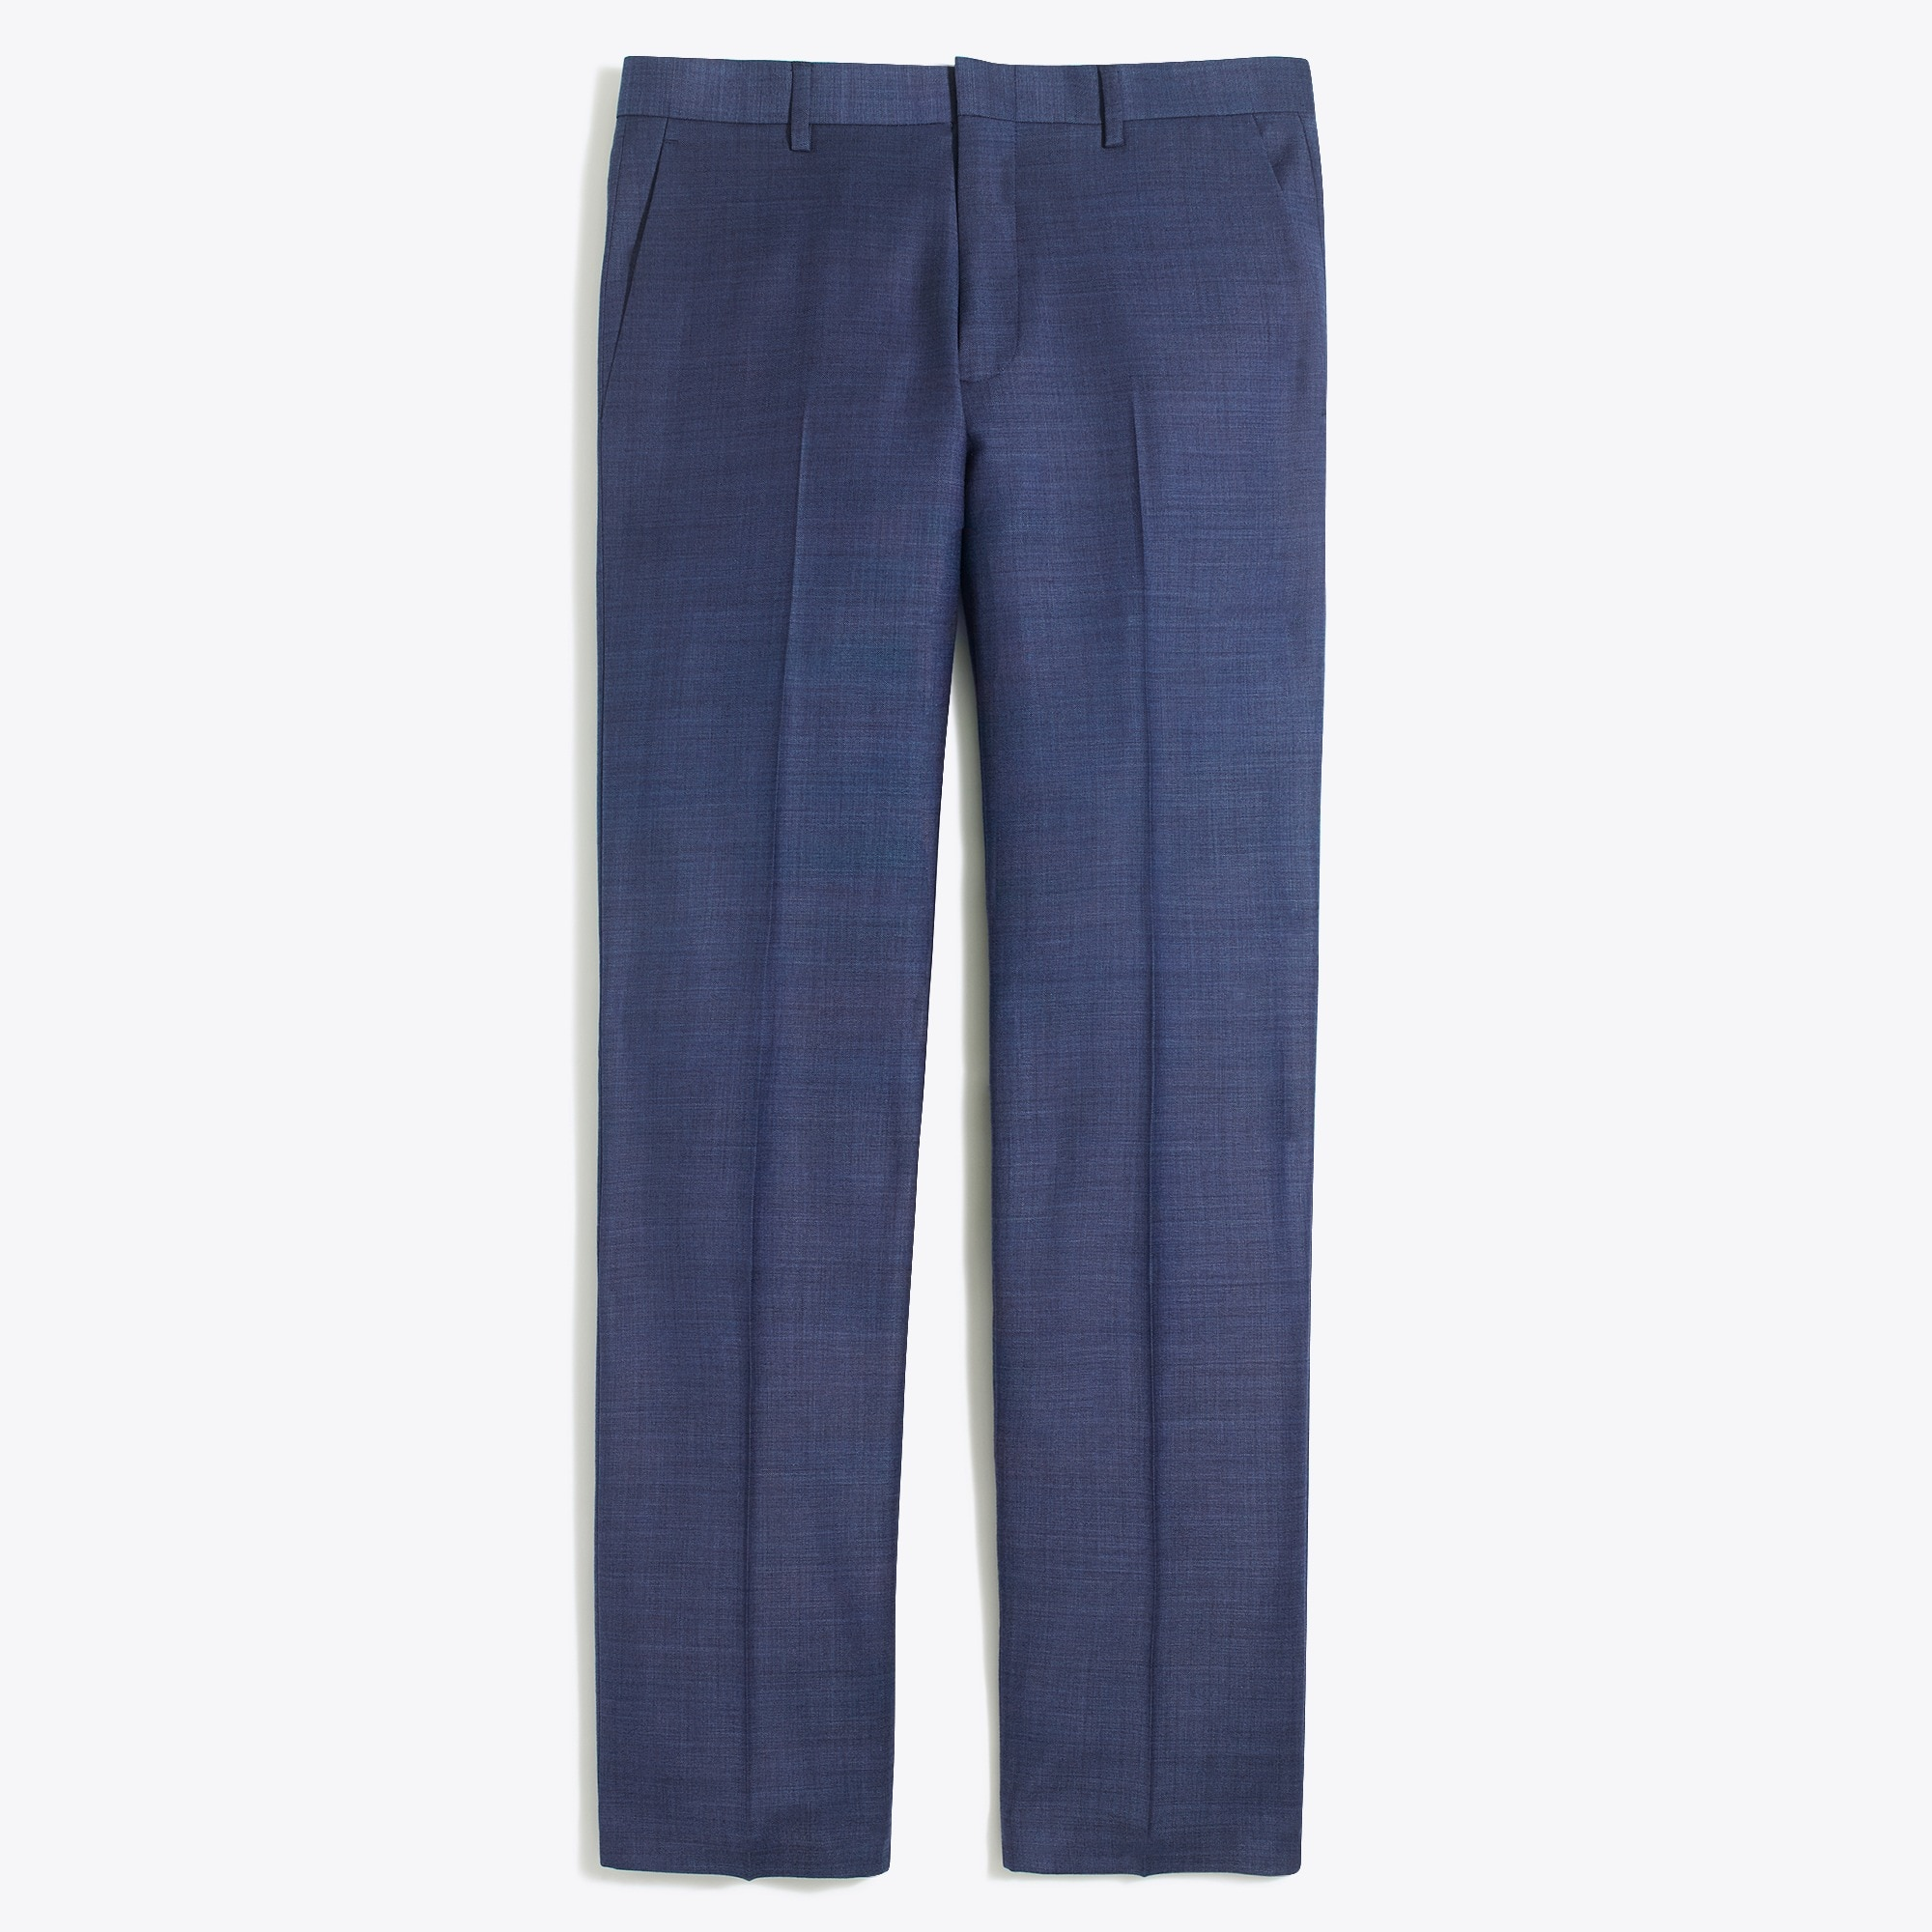 Image 4 for Slim Thompson suit pant in worsted wool